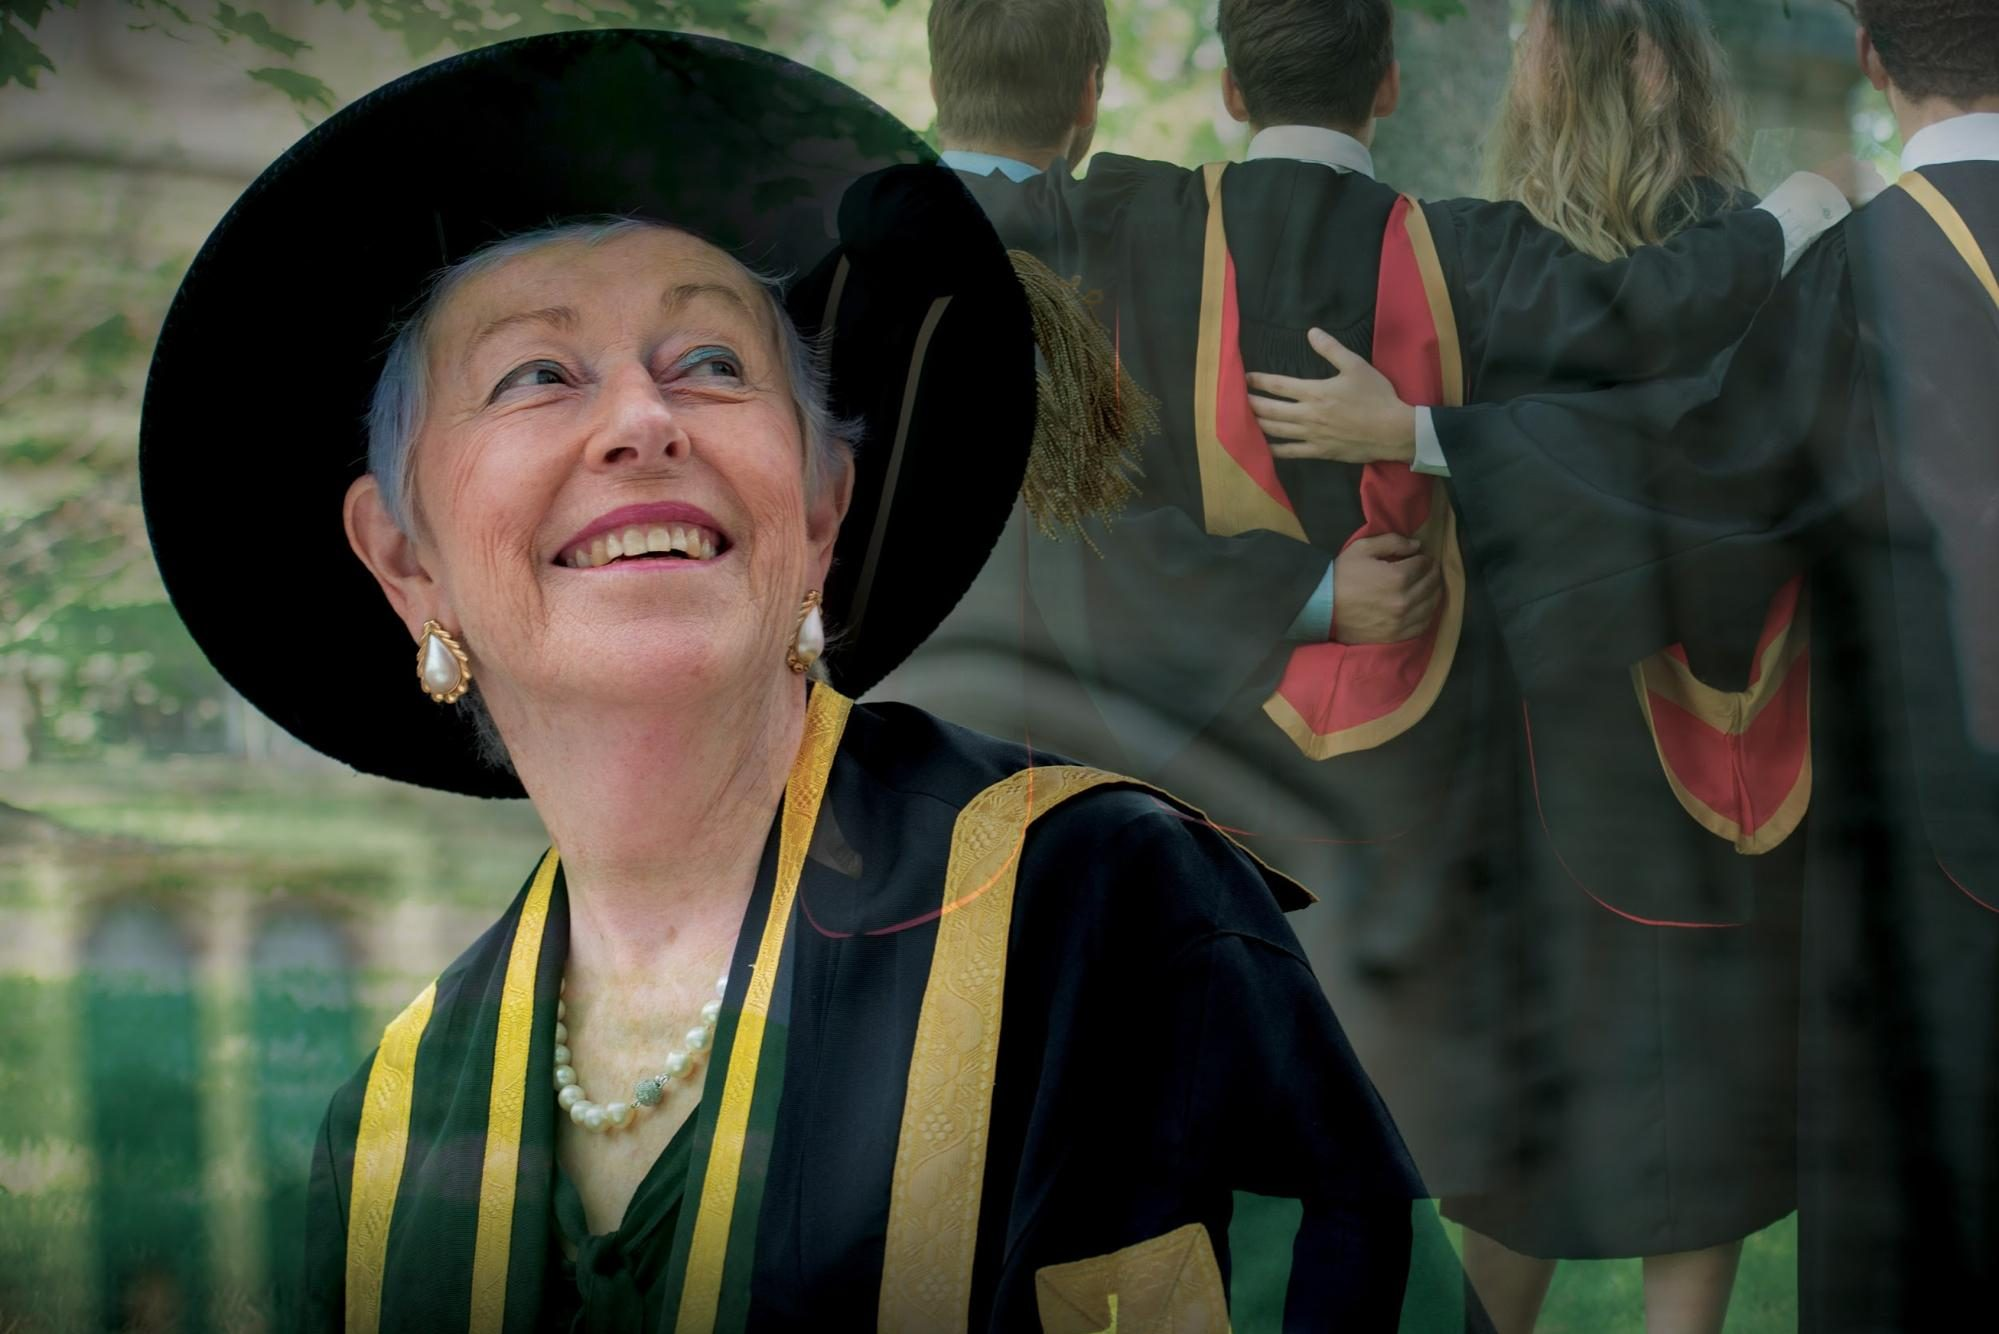 U of G chancellor, Martha Billes, in cap and gown looks up at four students in convocation gowns